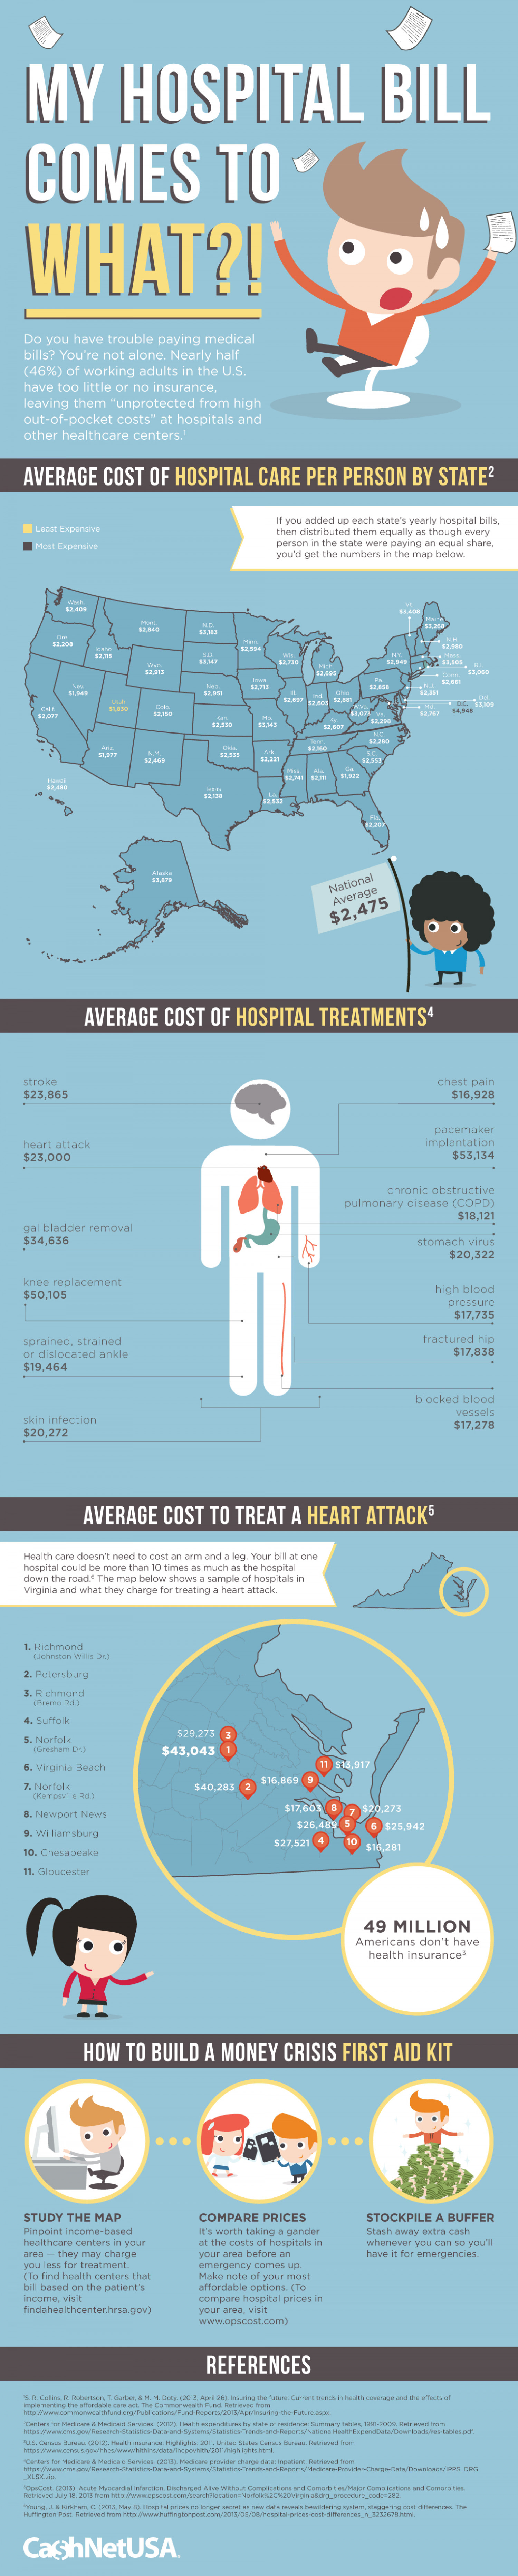 My Hospital Bill Comes to WHAT?! Infographic